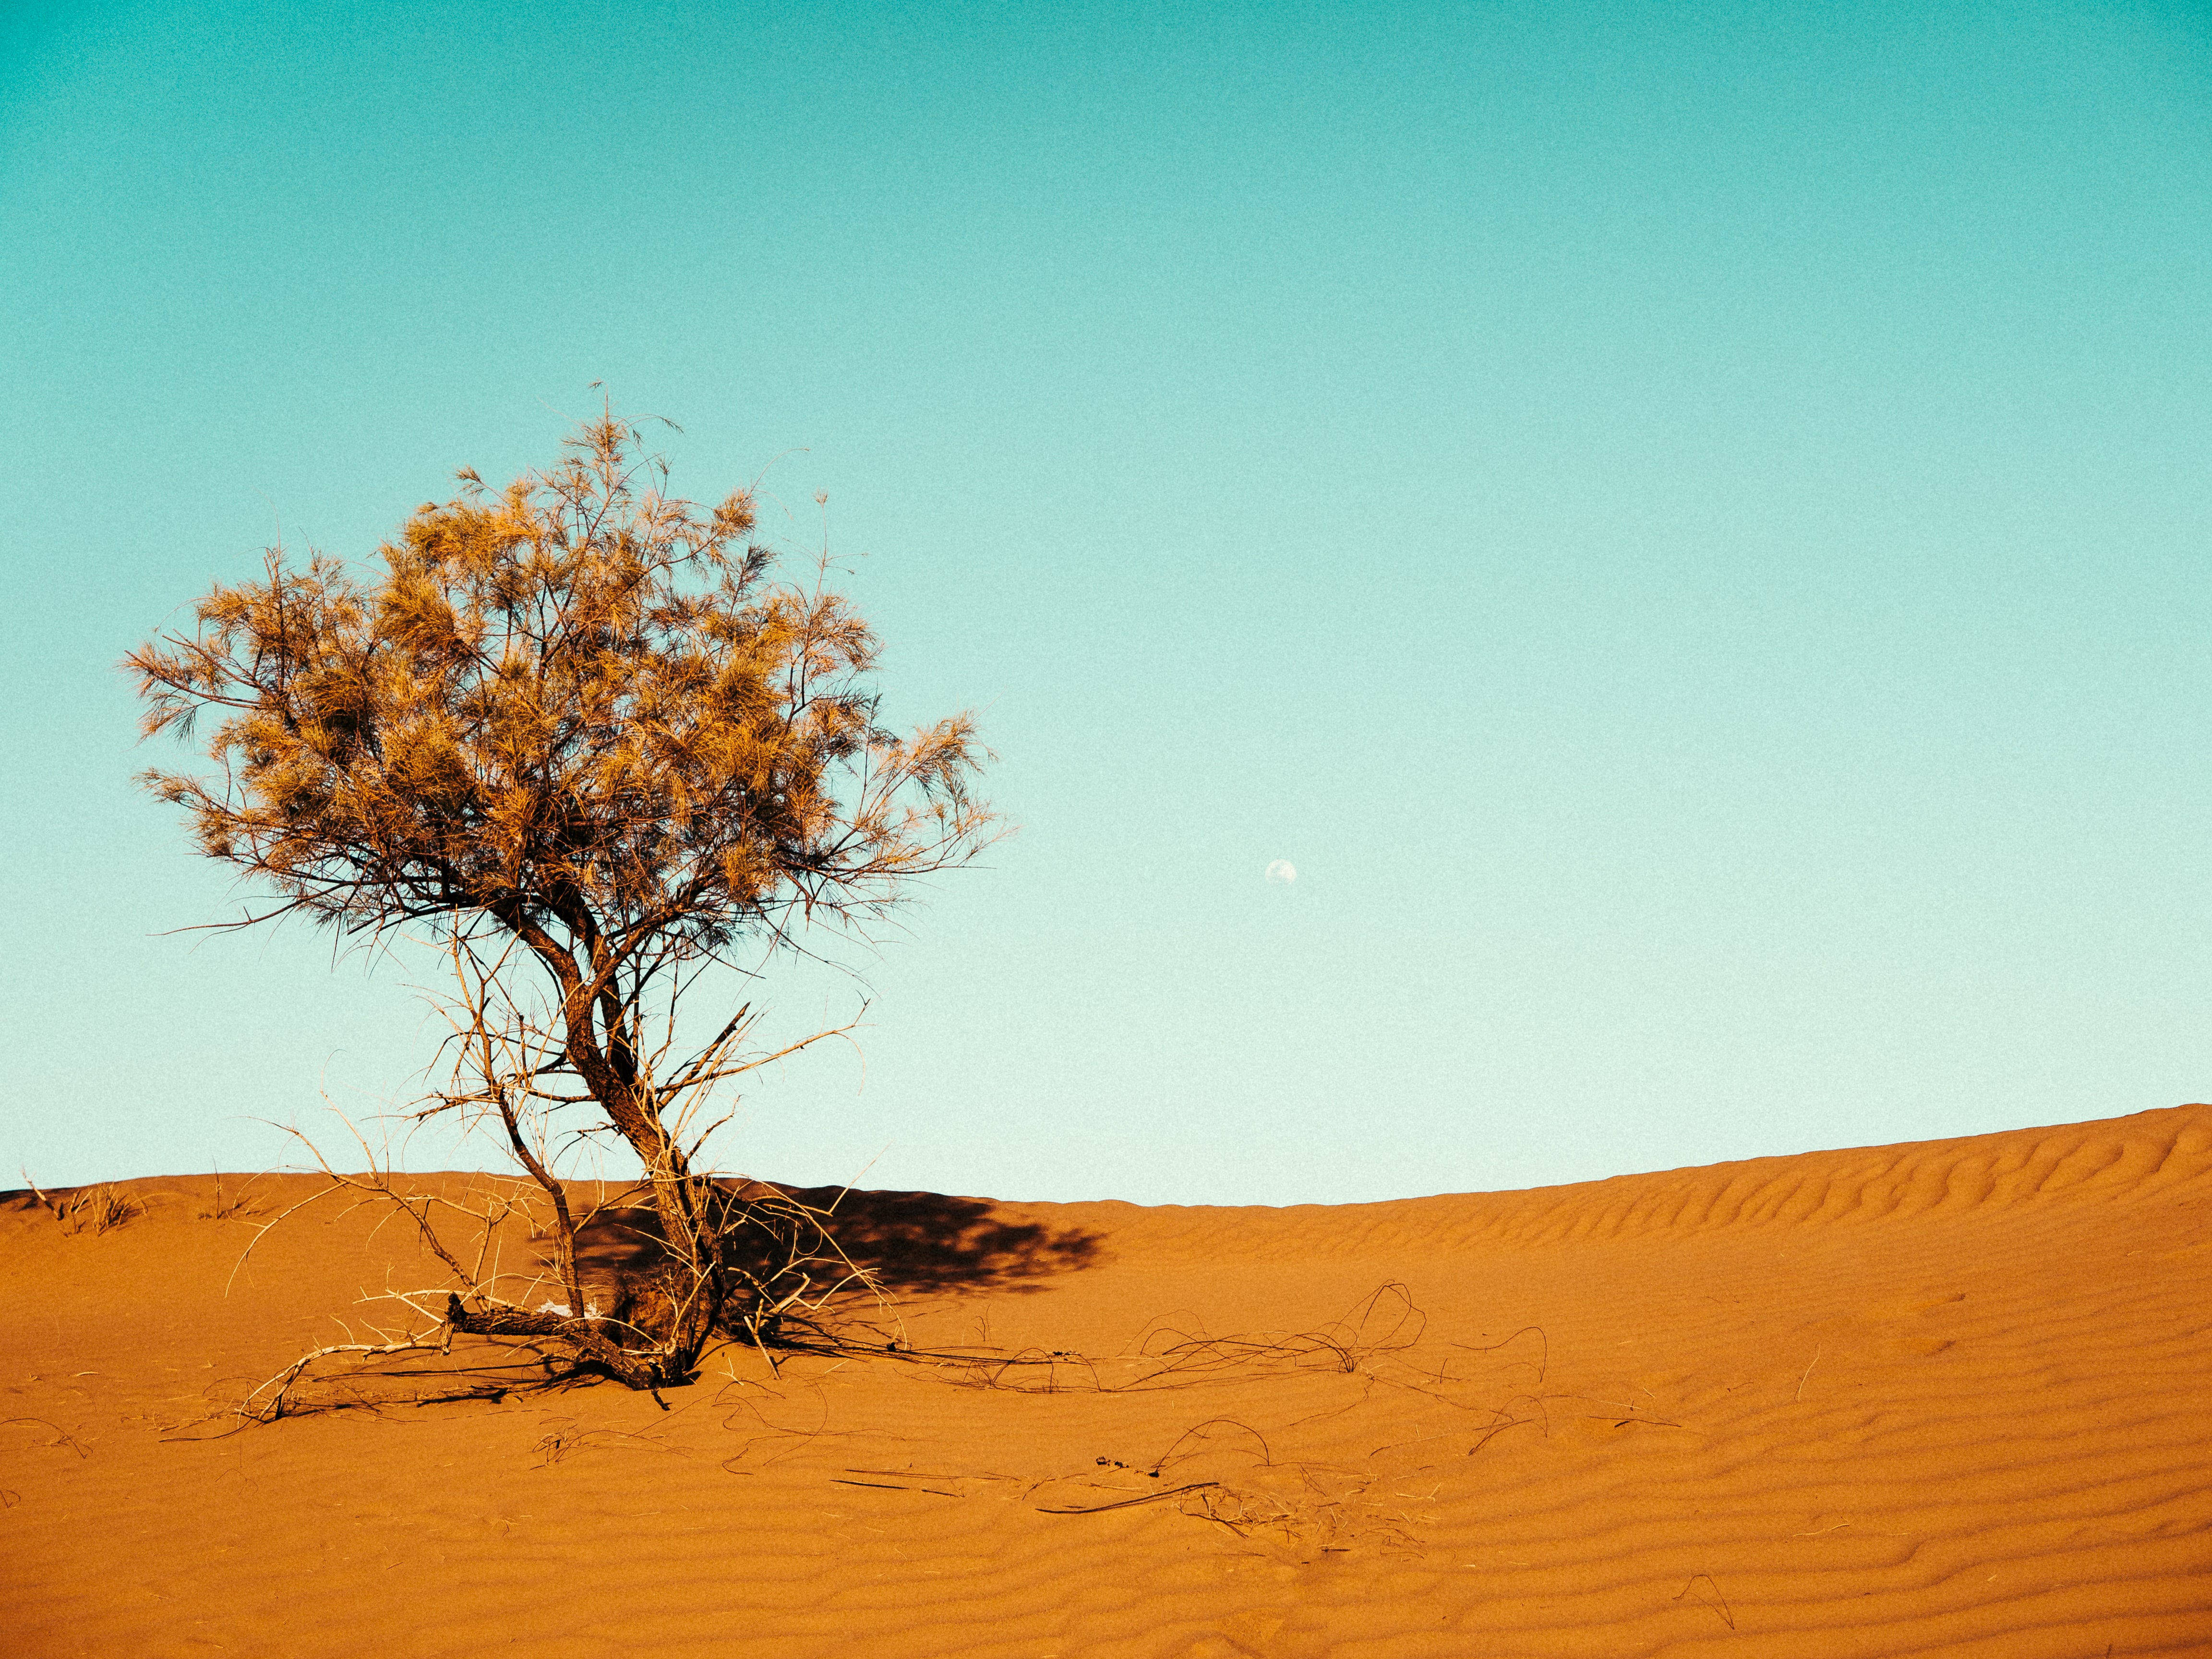 vast desert with tree